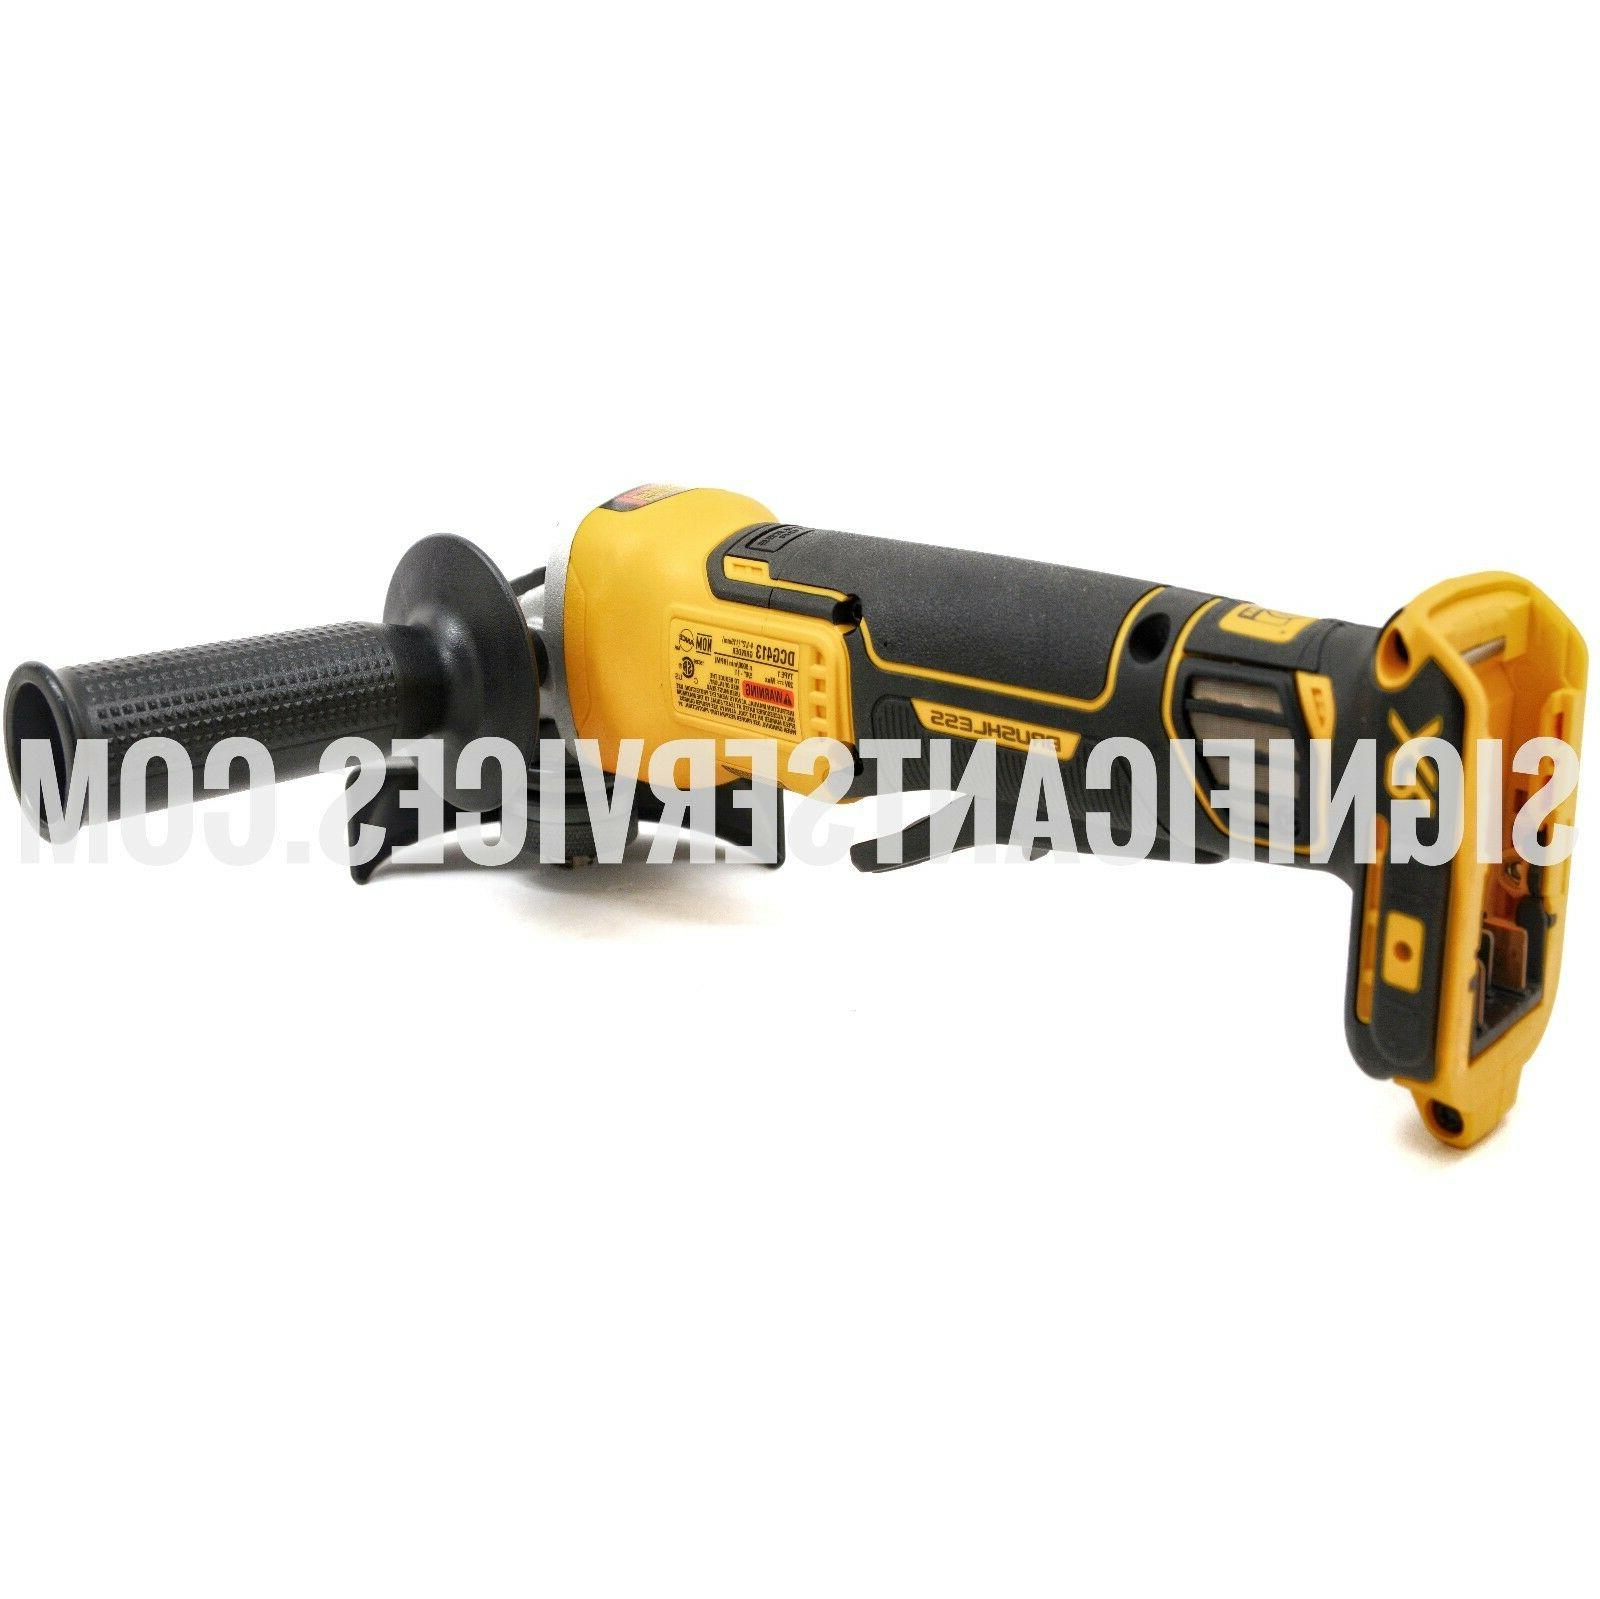 NEW DeWALT Volt MAX XR 4 Brushless Grinder w